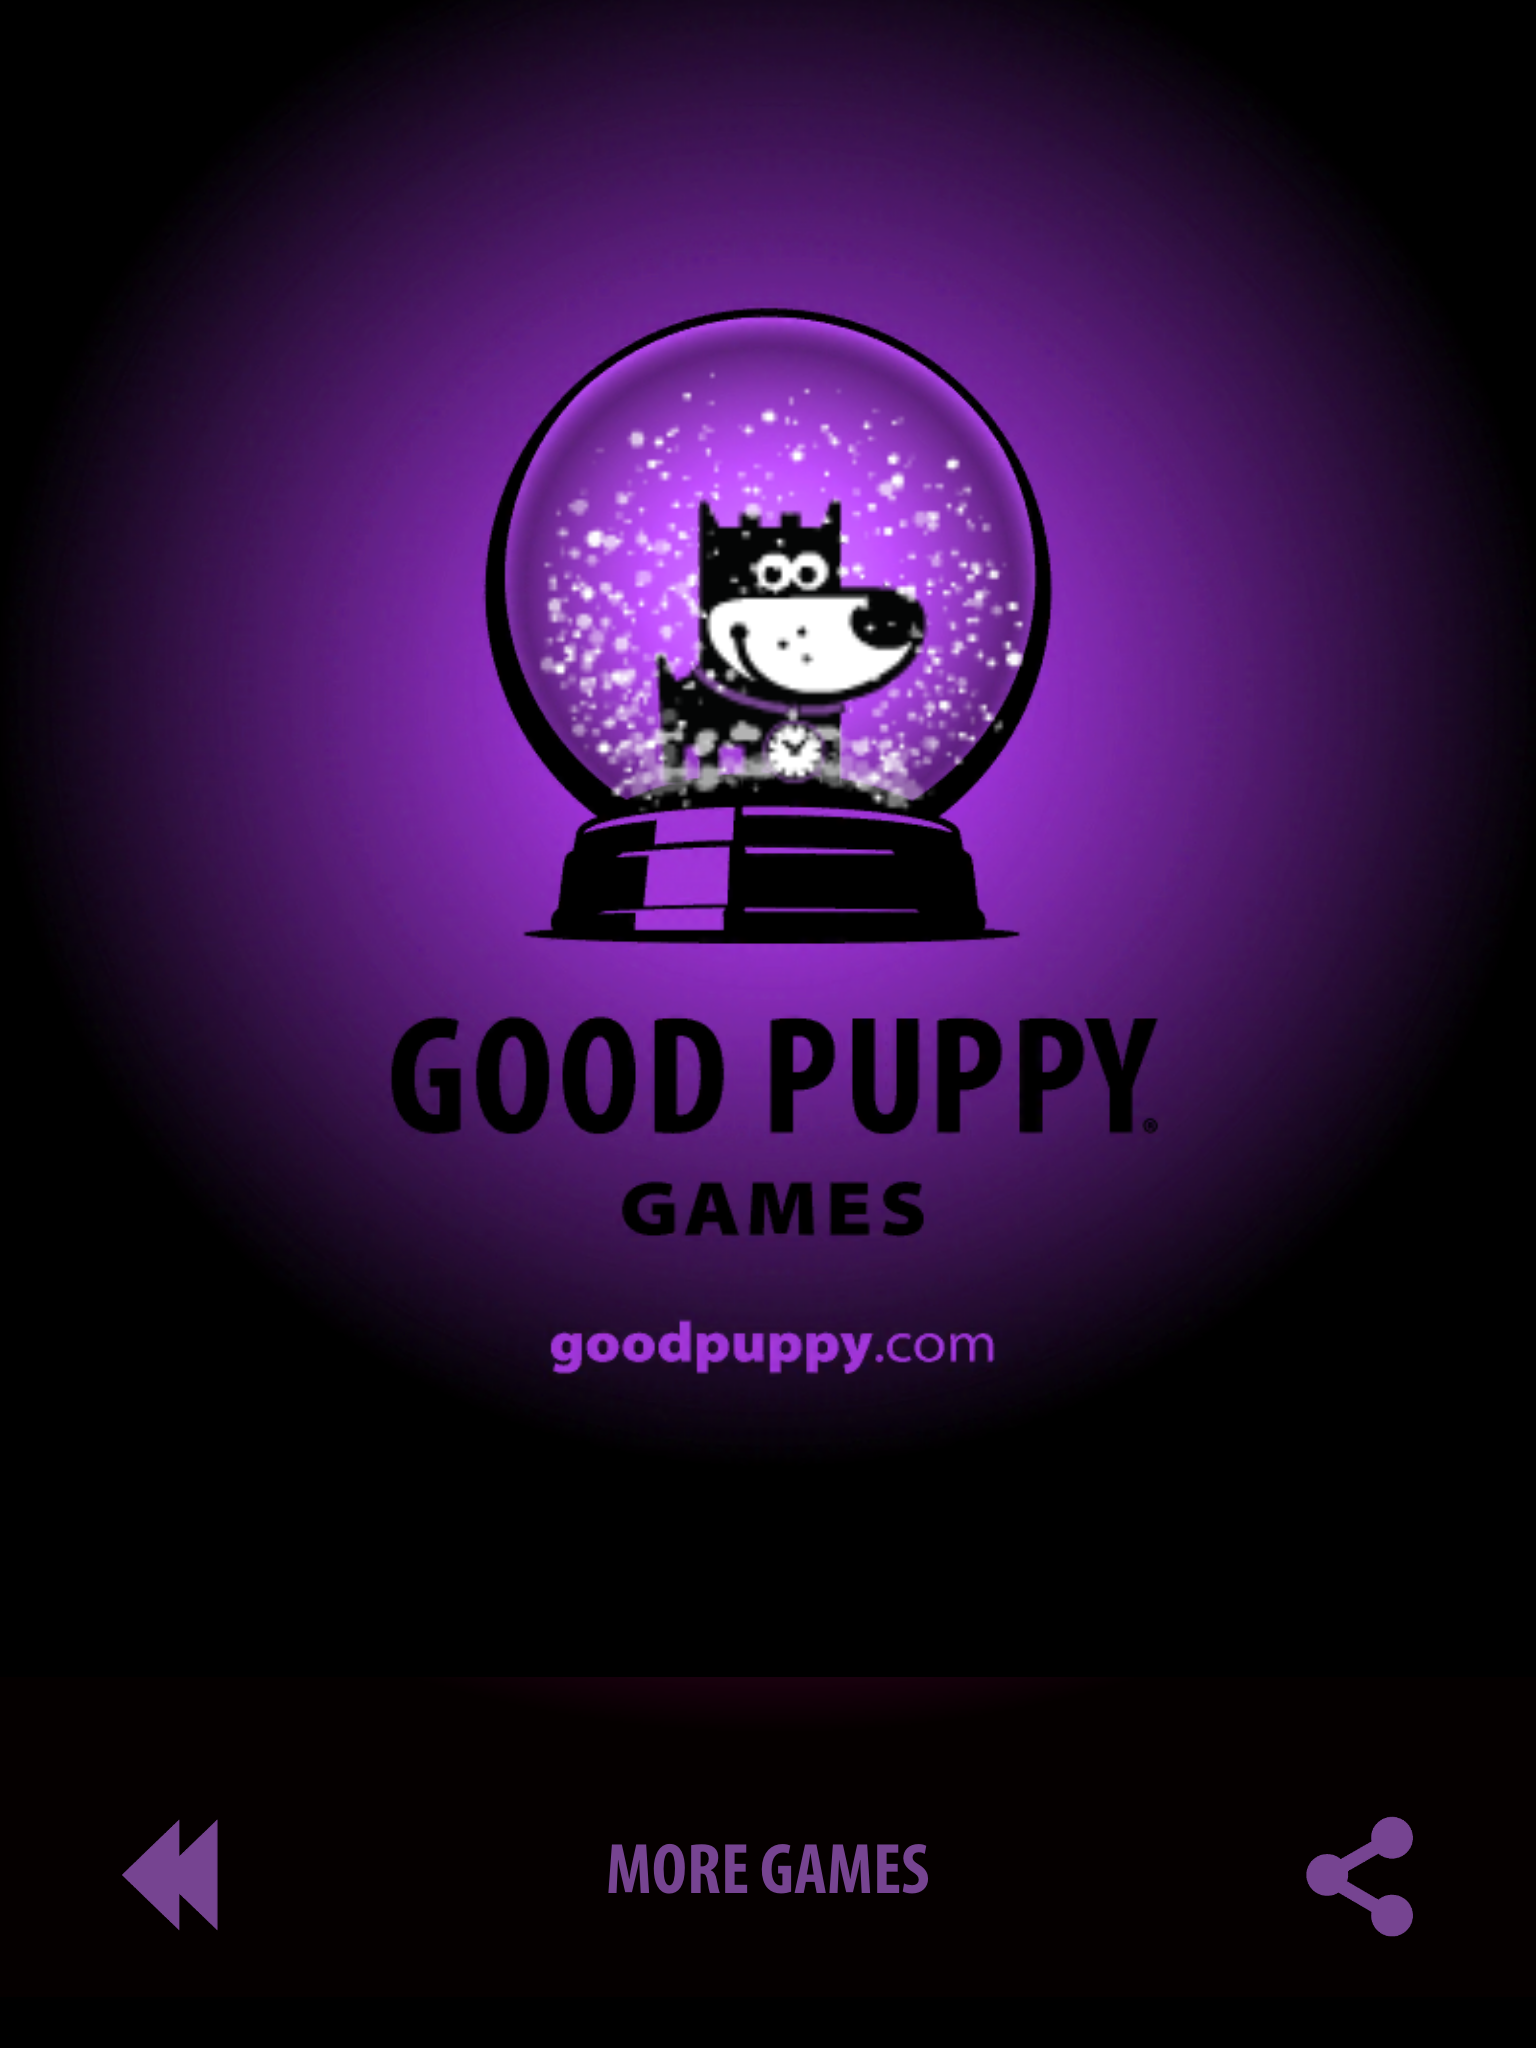 GOOD-PUPPY-DIG-Infinite-Runner-Fast-Retro-Arcade-Game-16.png